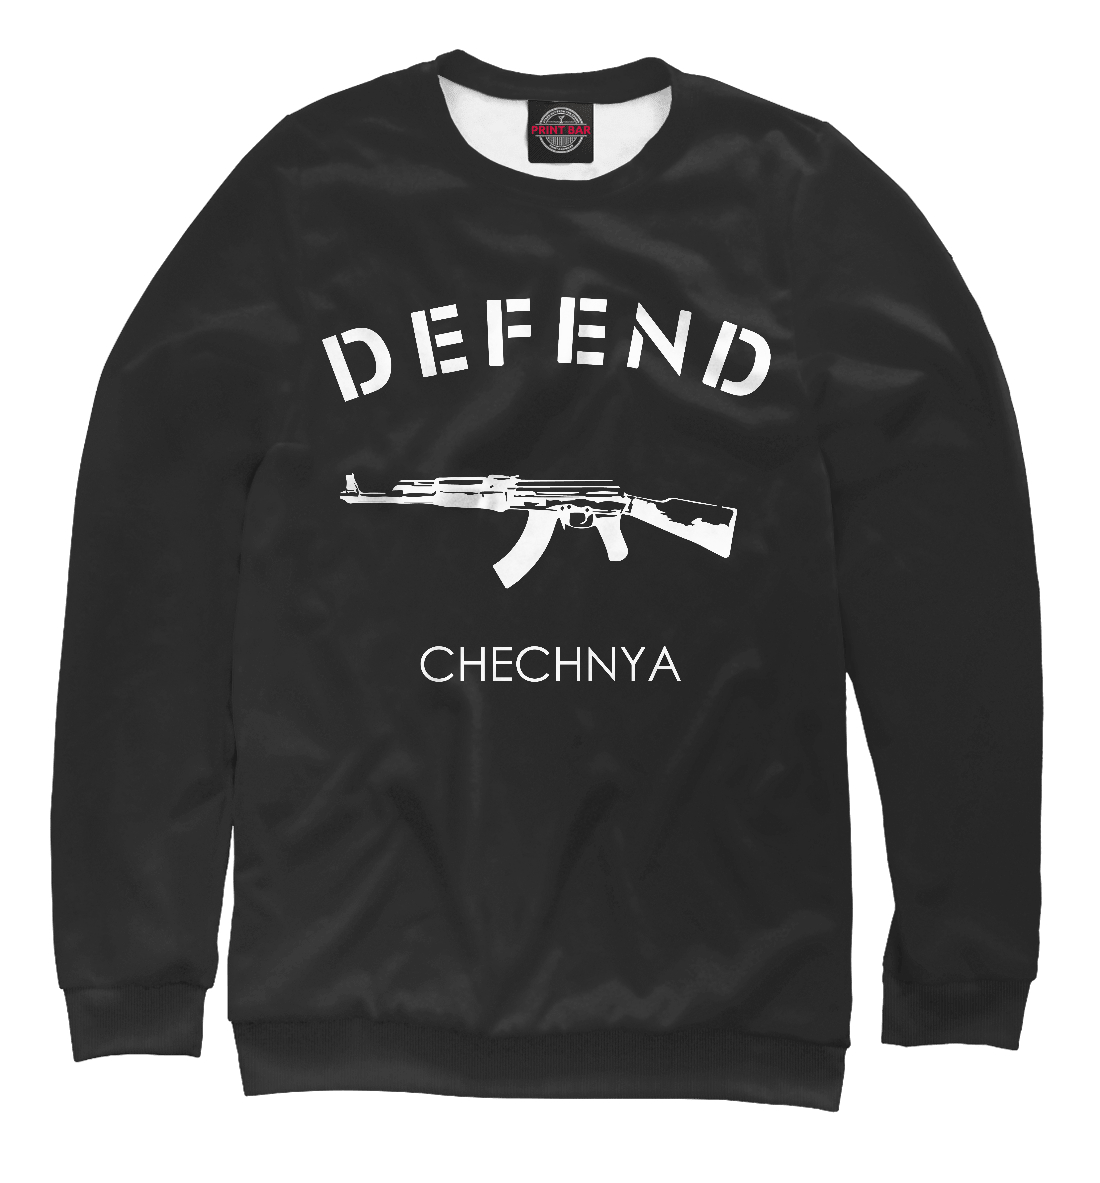 Купить Defend Chechnya, Printbar, Свитшоты, APD-613216-swi-2